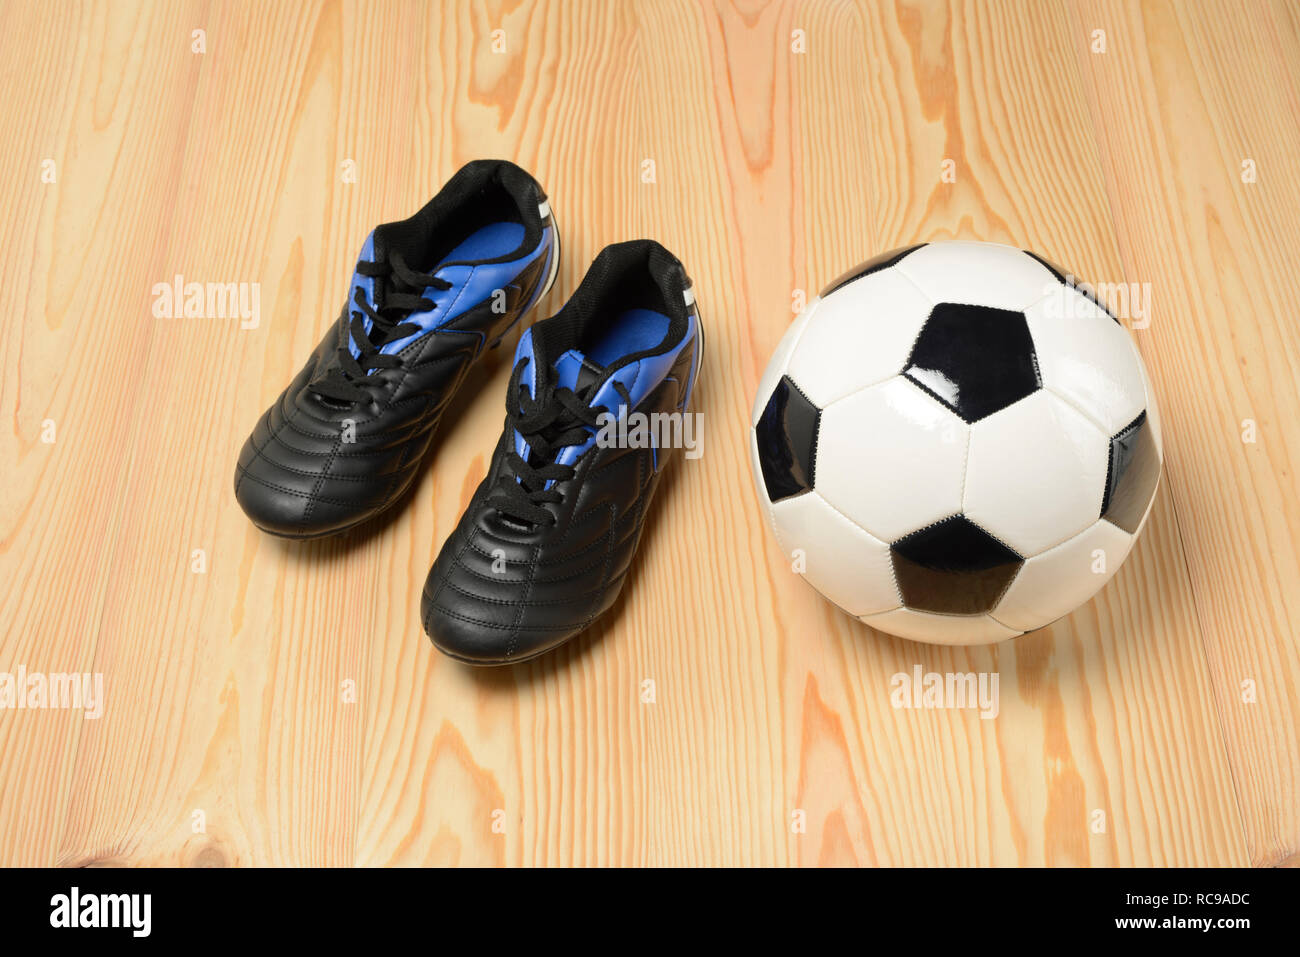 dda1e4c71 Soccer ball and boots on the wooden floor Stock Photo  231316440 - Alamy